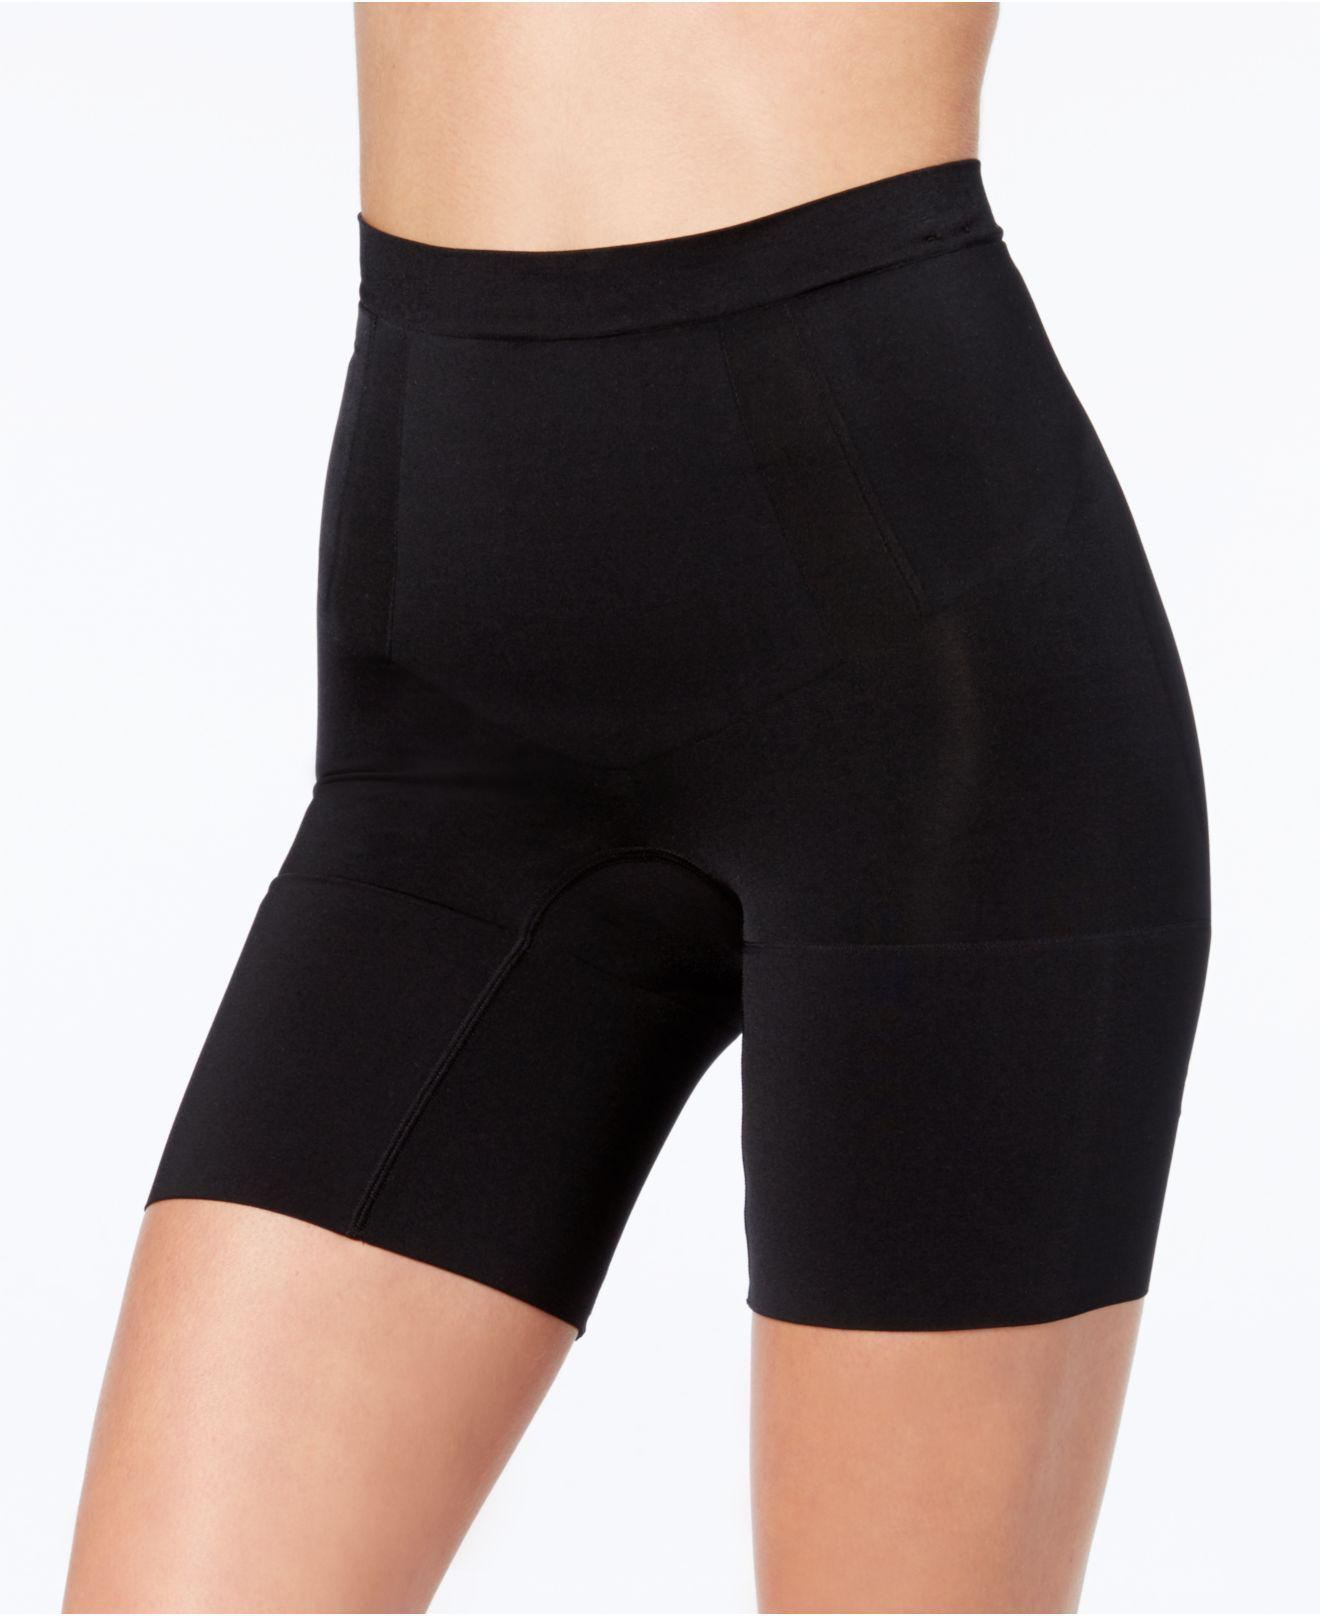 aa9ac44b05 Lyst - Spanx Oncore Mid-thigh Short Ss6615 in Black